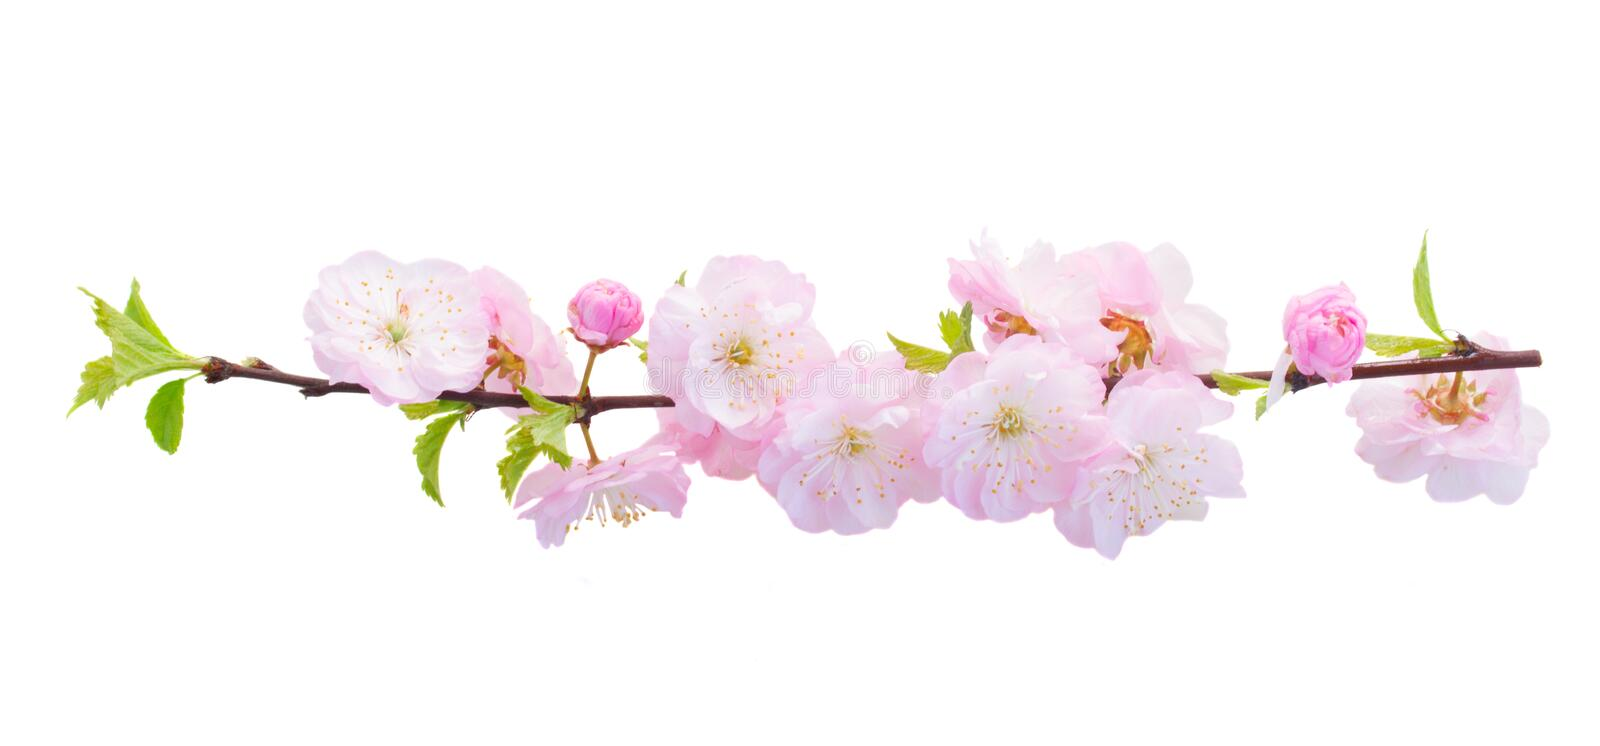 Blossoming pink tree Flowers. Blossoming fresh pink sacura cherry tree branches with flowers against white background royalty free stock images